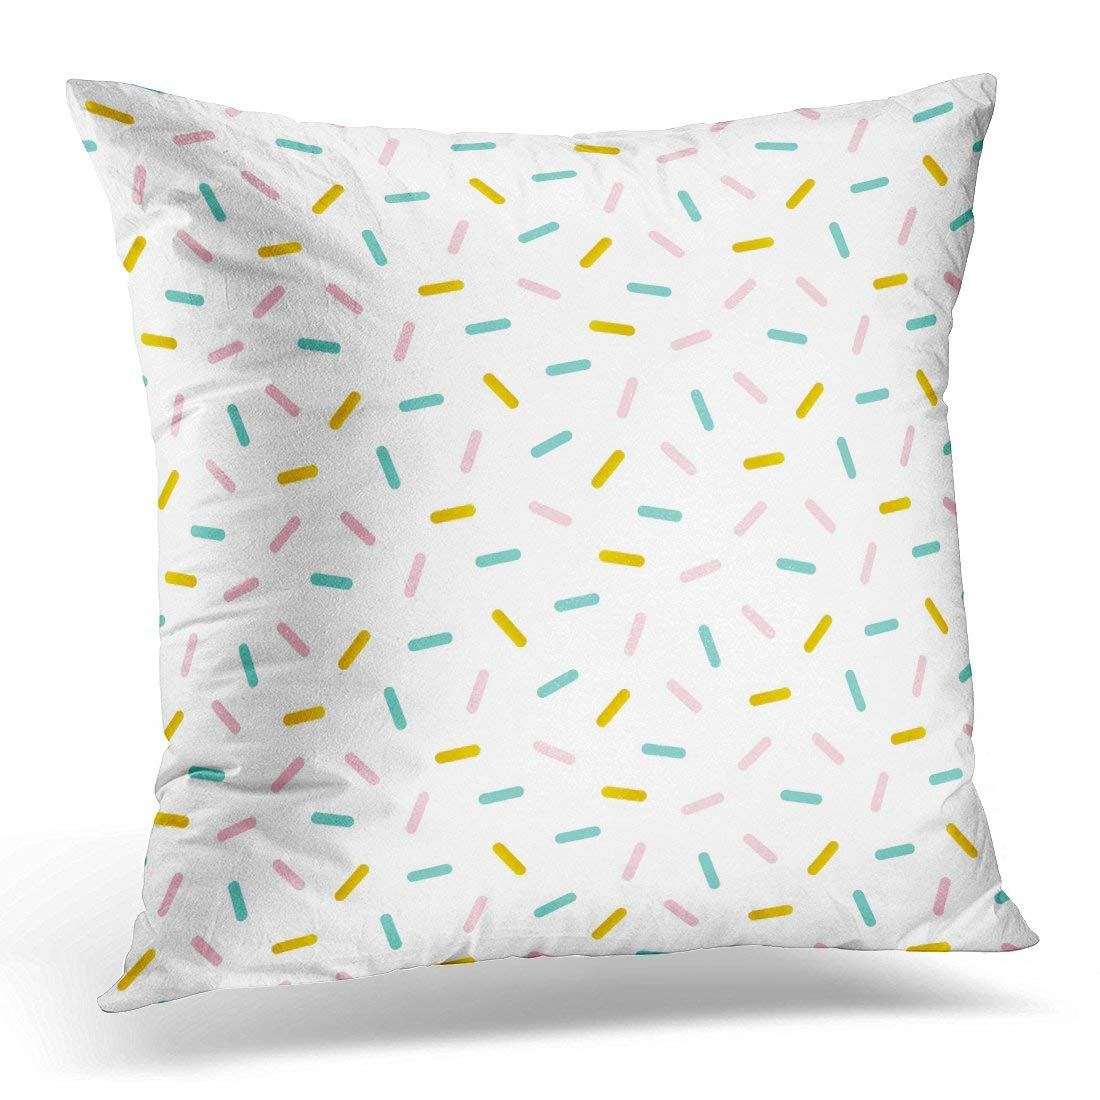 pink throw pillows for sofa bed in dhaka arhome white line cute mint green and gold confetti